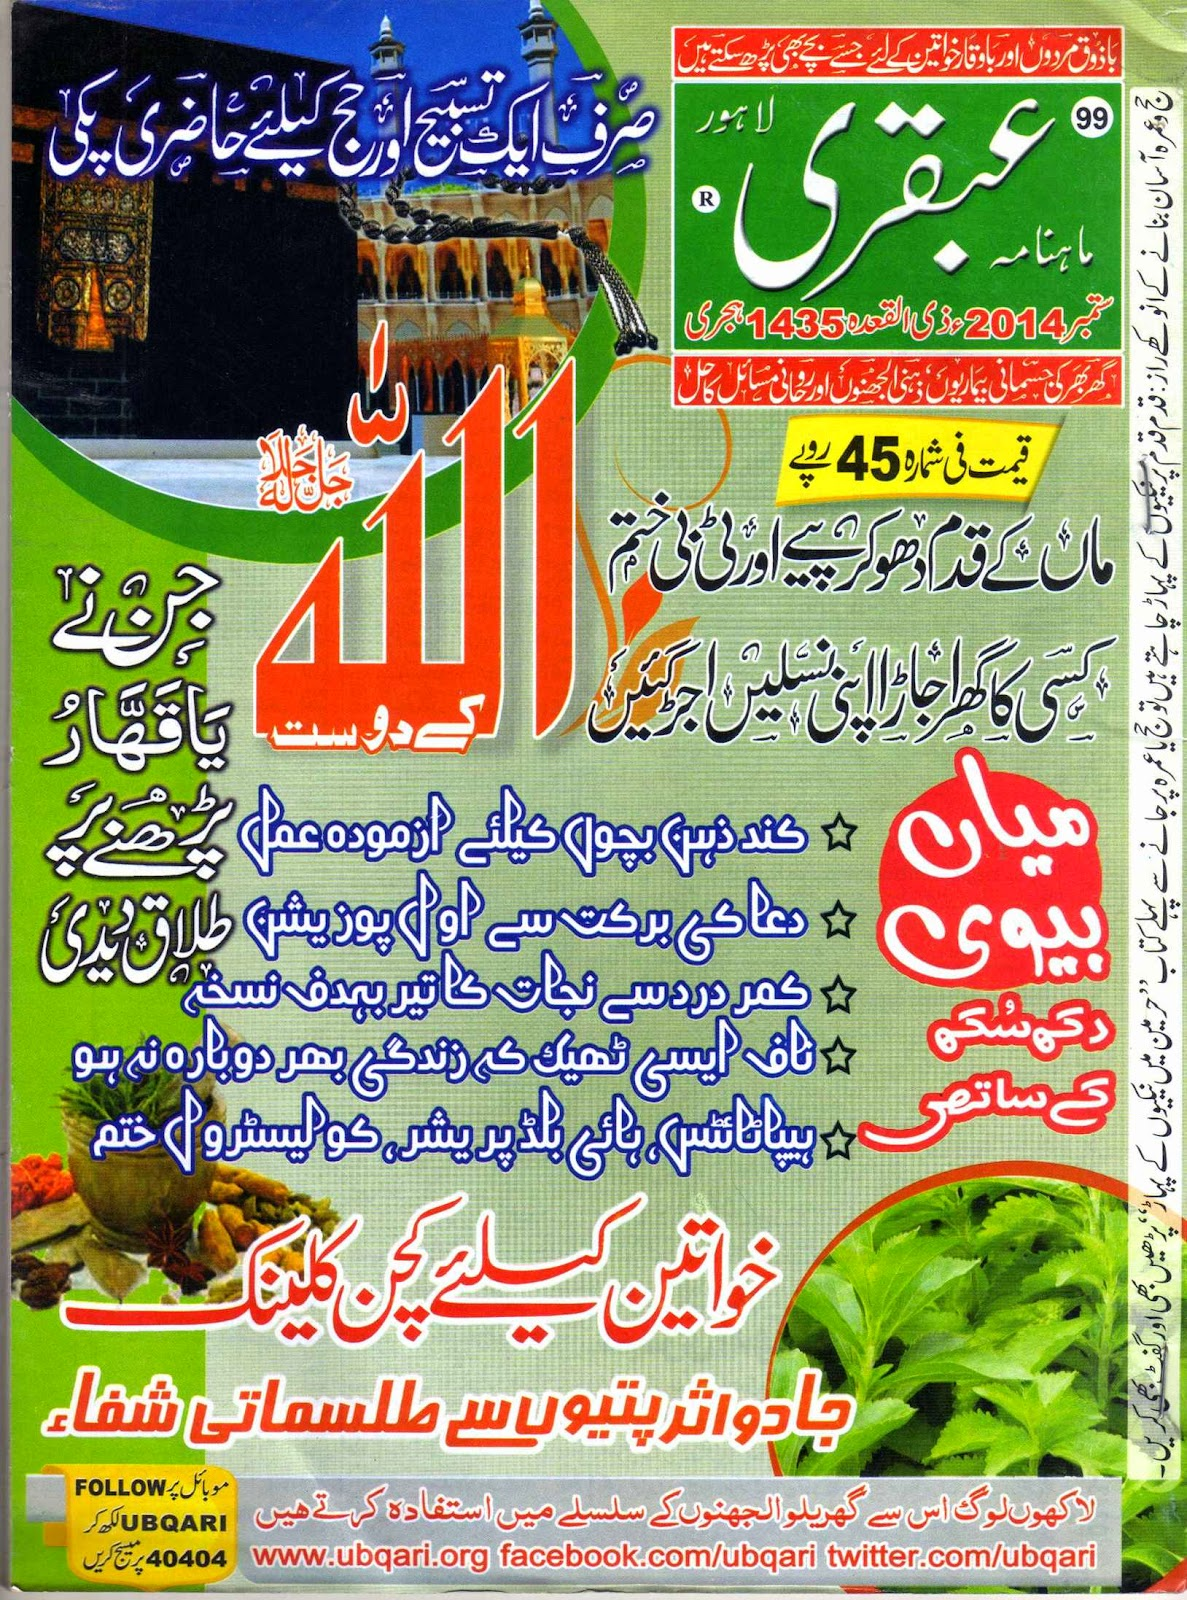 Ubqari-Magazine-September-Tital-Page